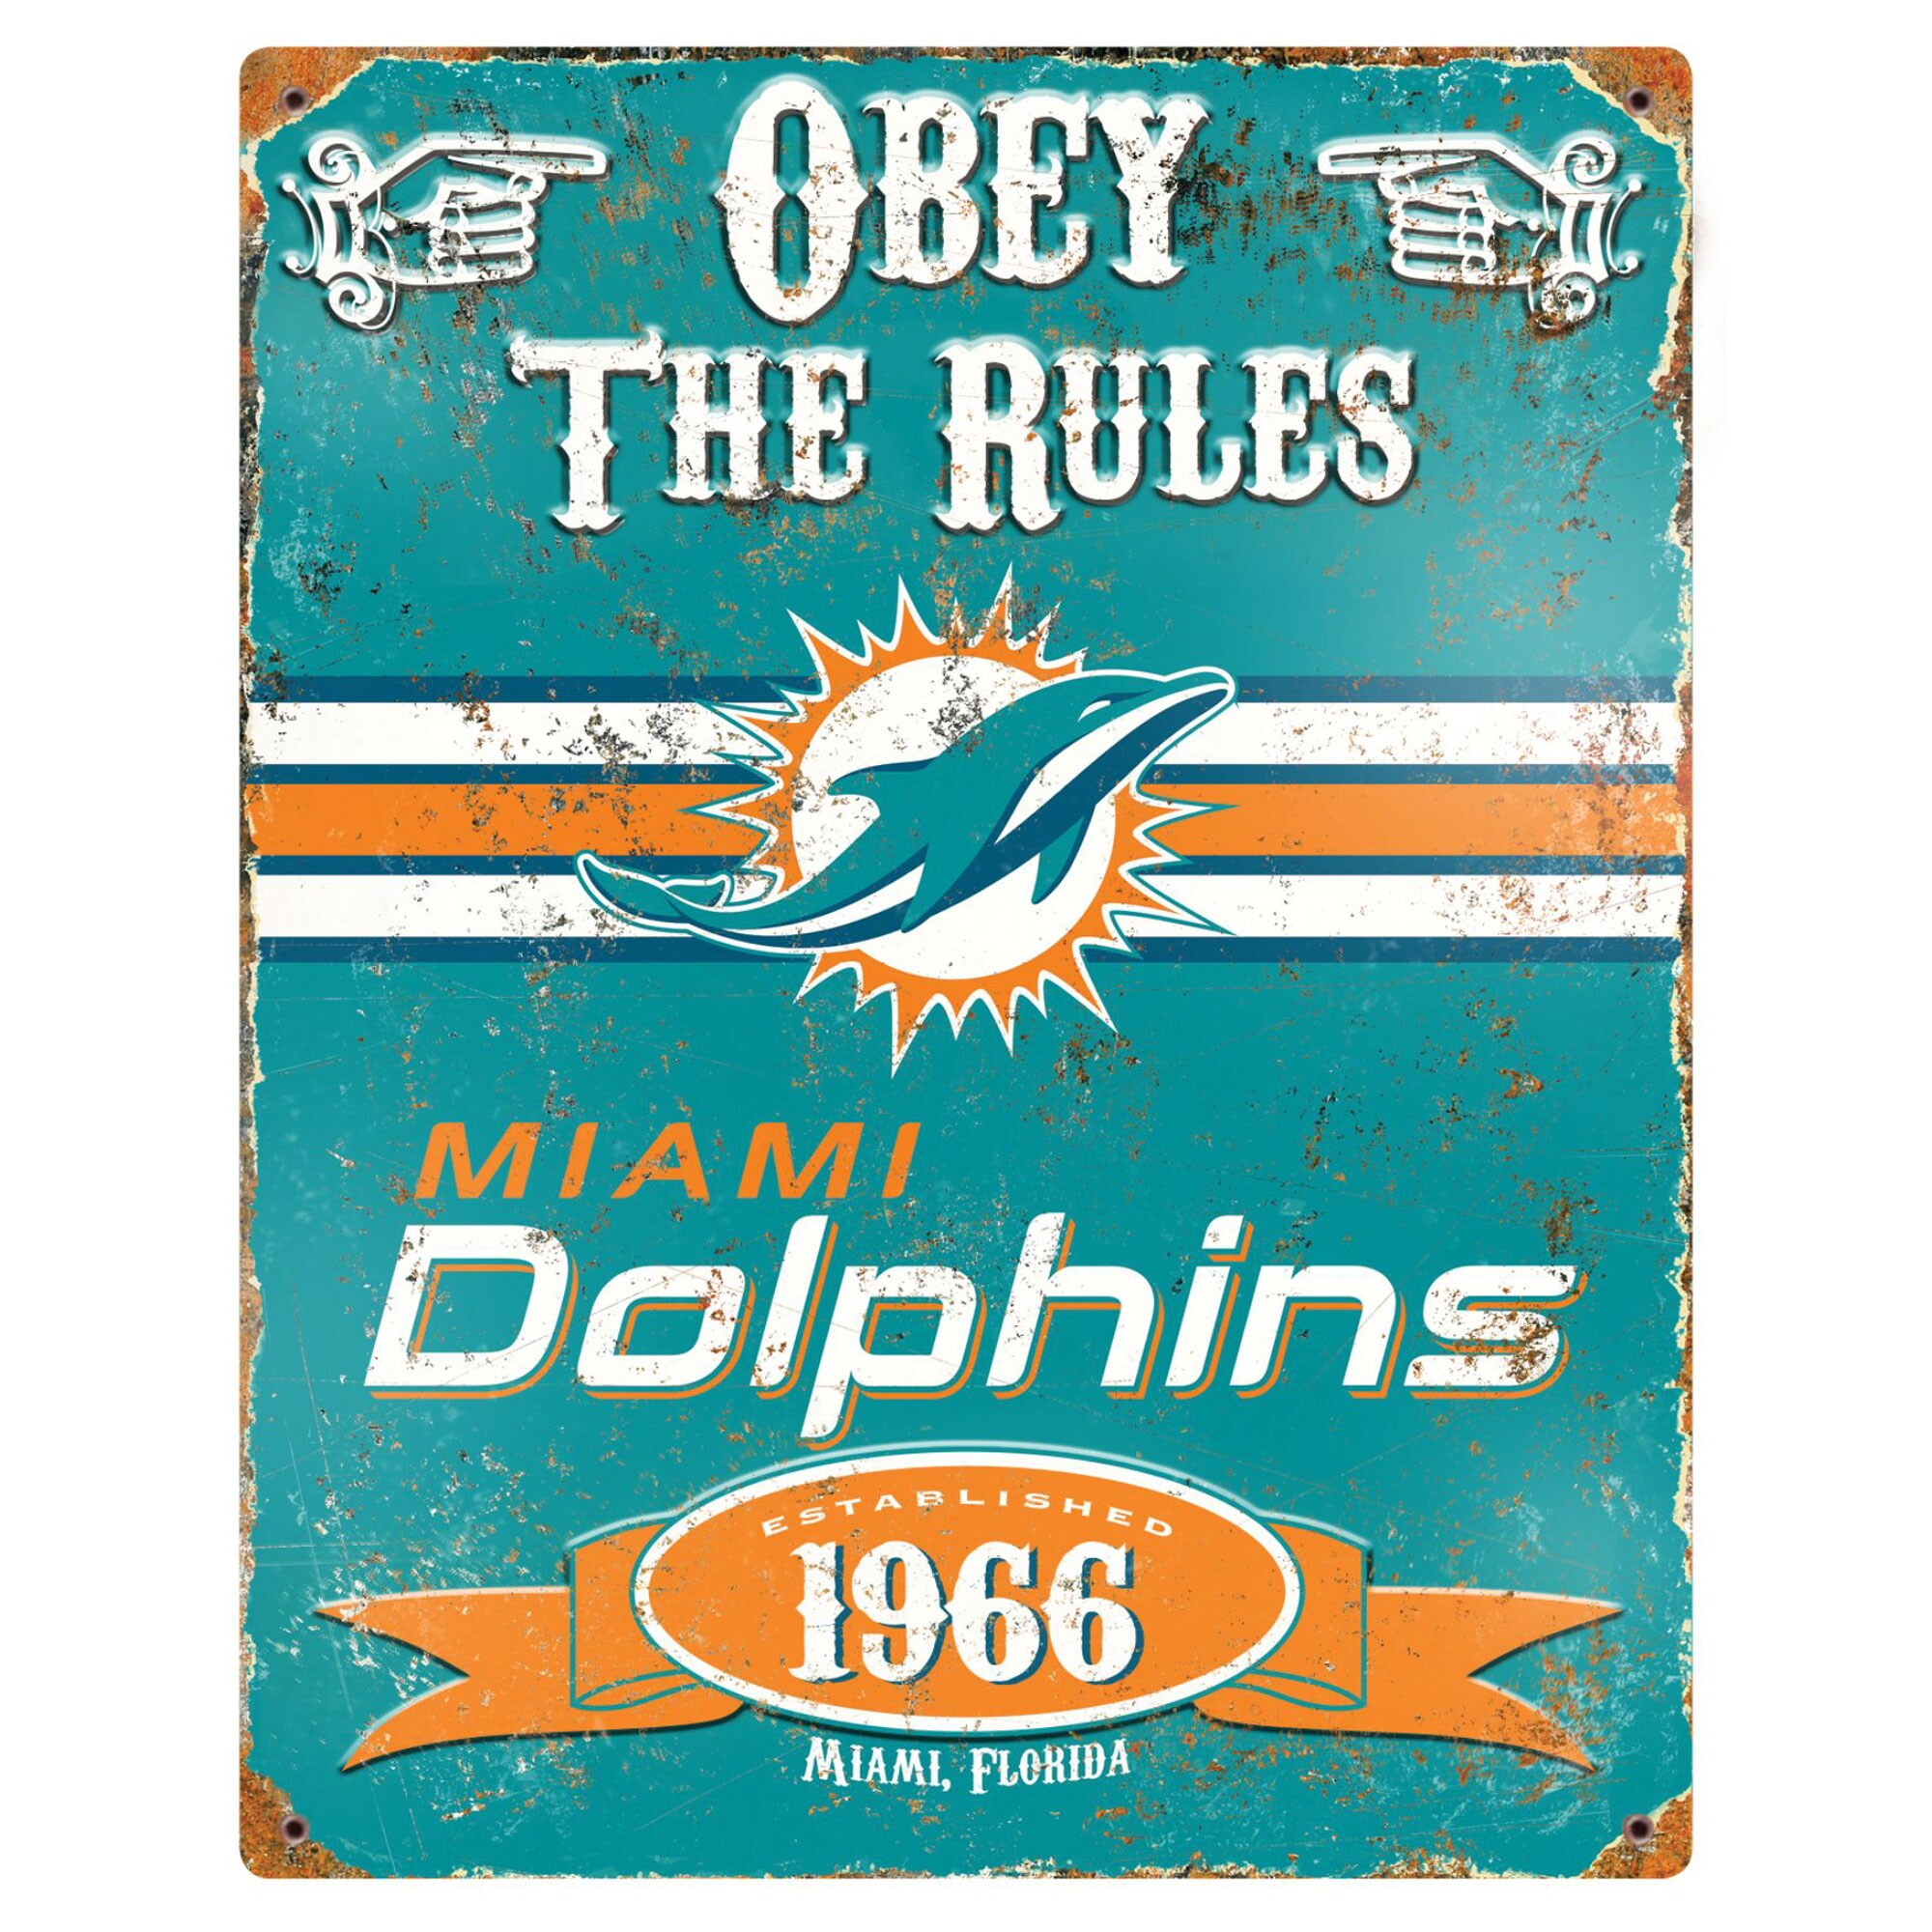 Miami Dolphins 14.5'' x 11.5'' Embossed Metal Sign